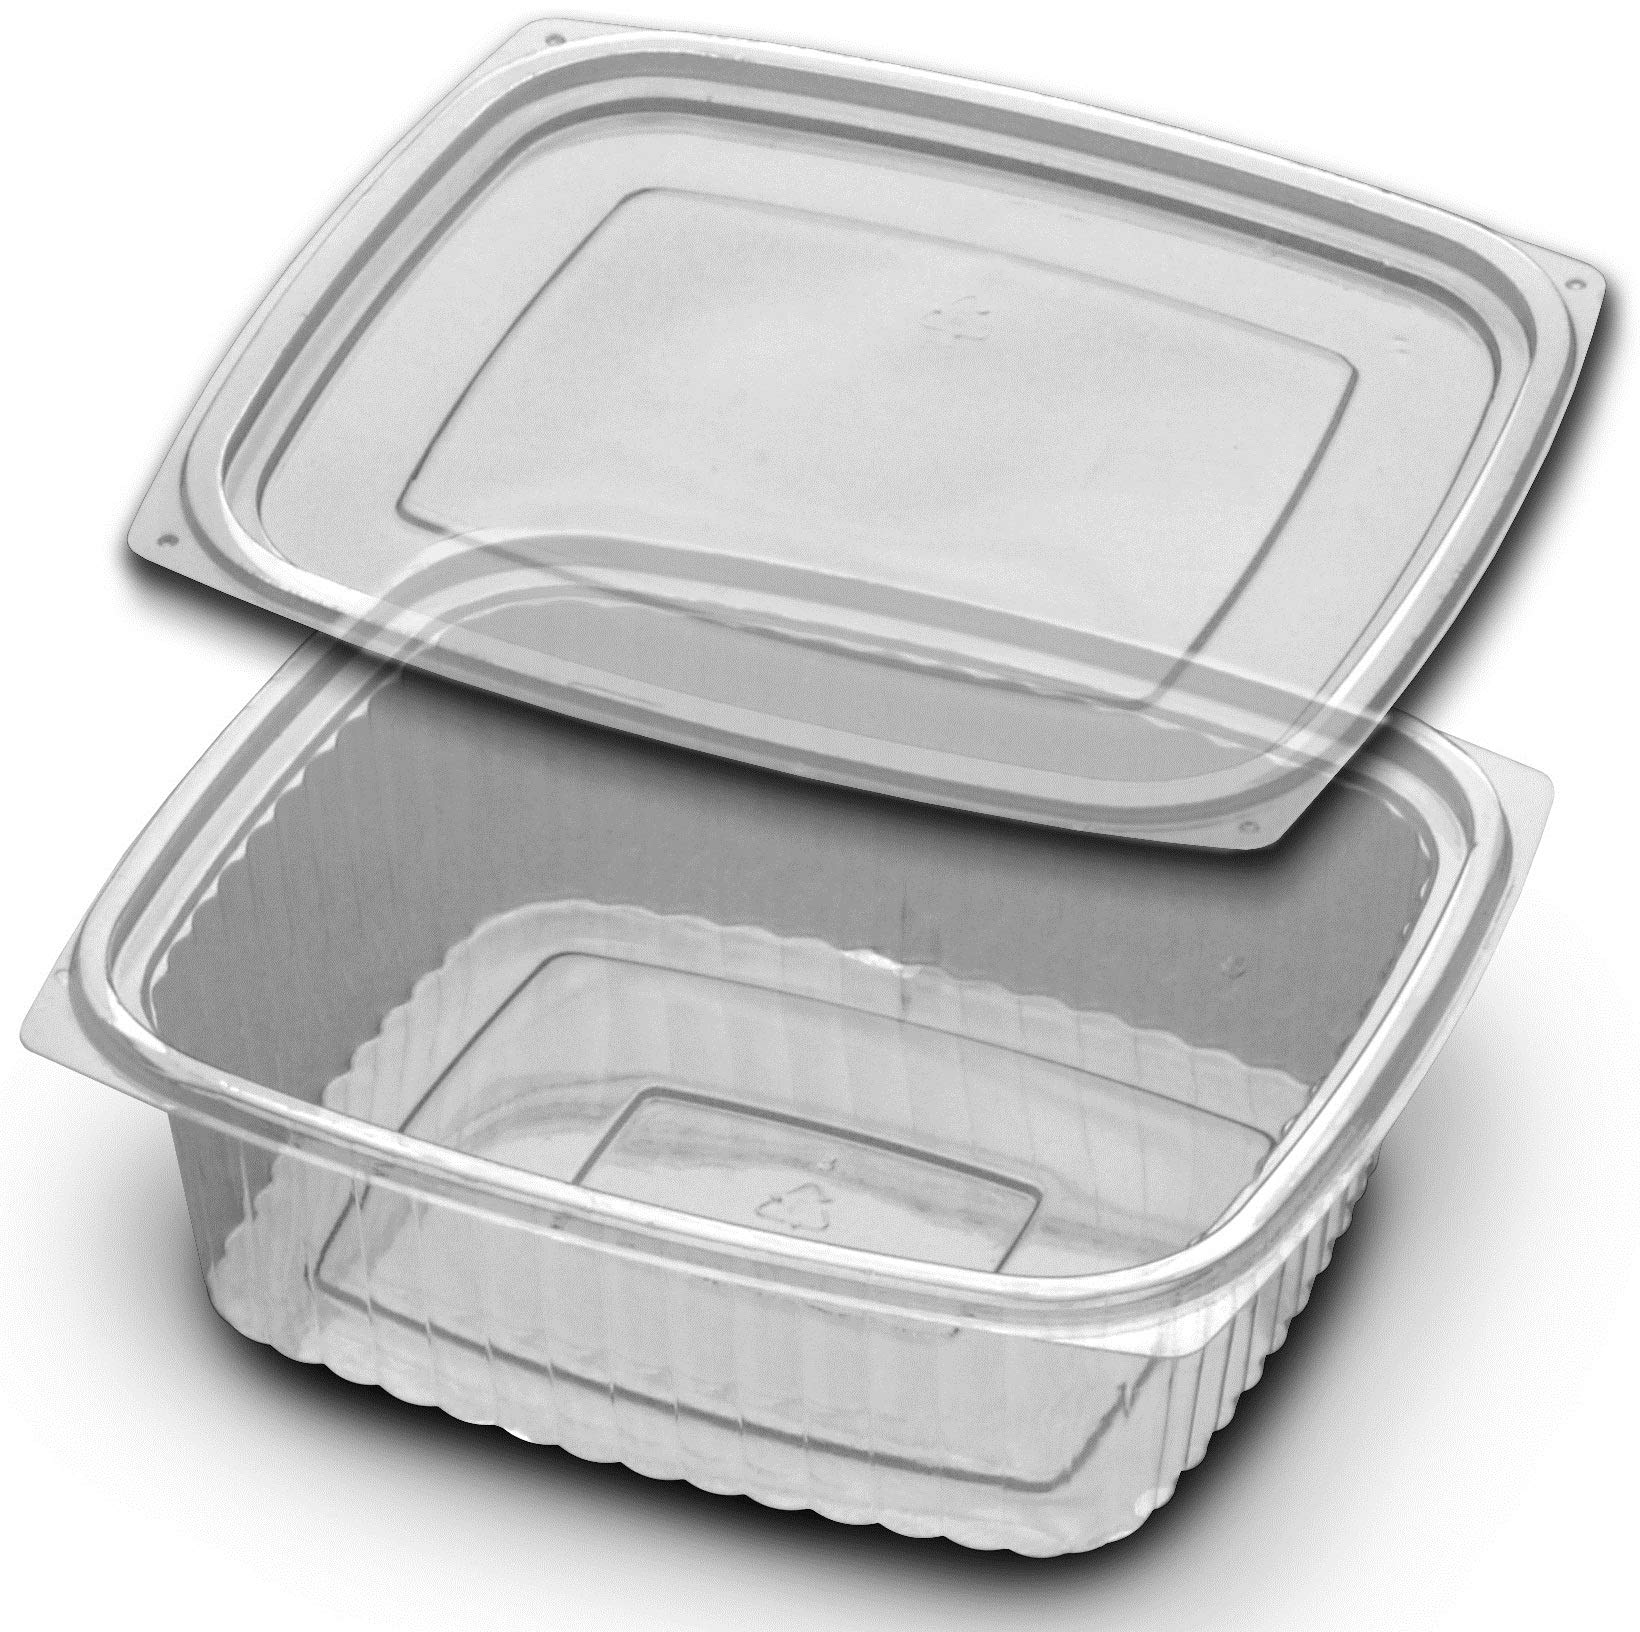 D and W Fine Pack Plastic Clear Container with Flat Lid, 32 Ounce - 250 per case.